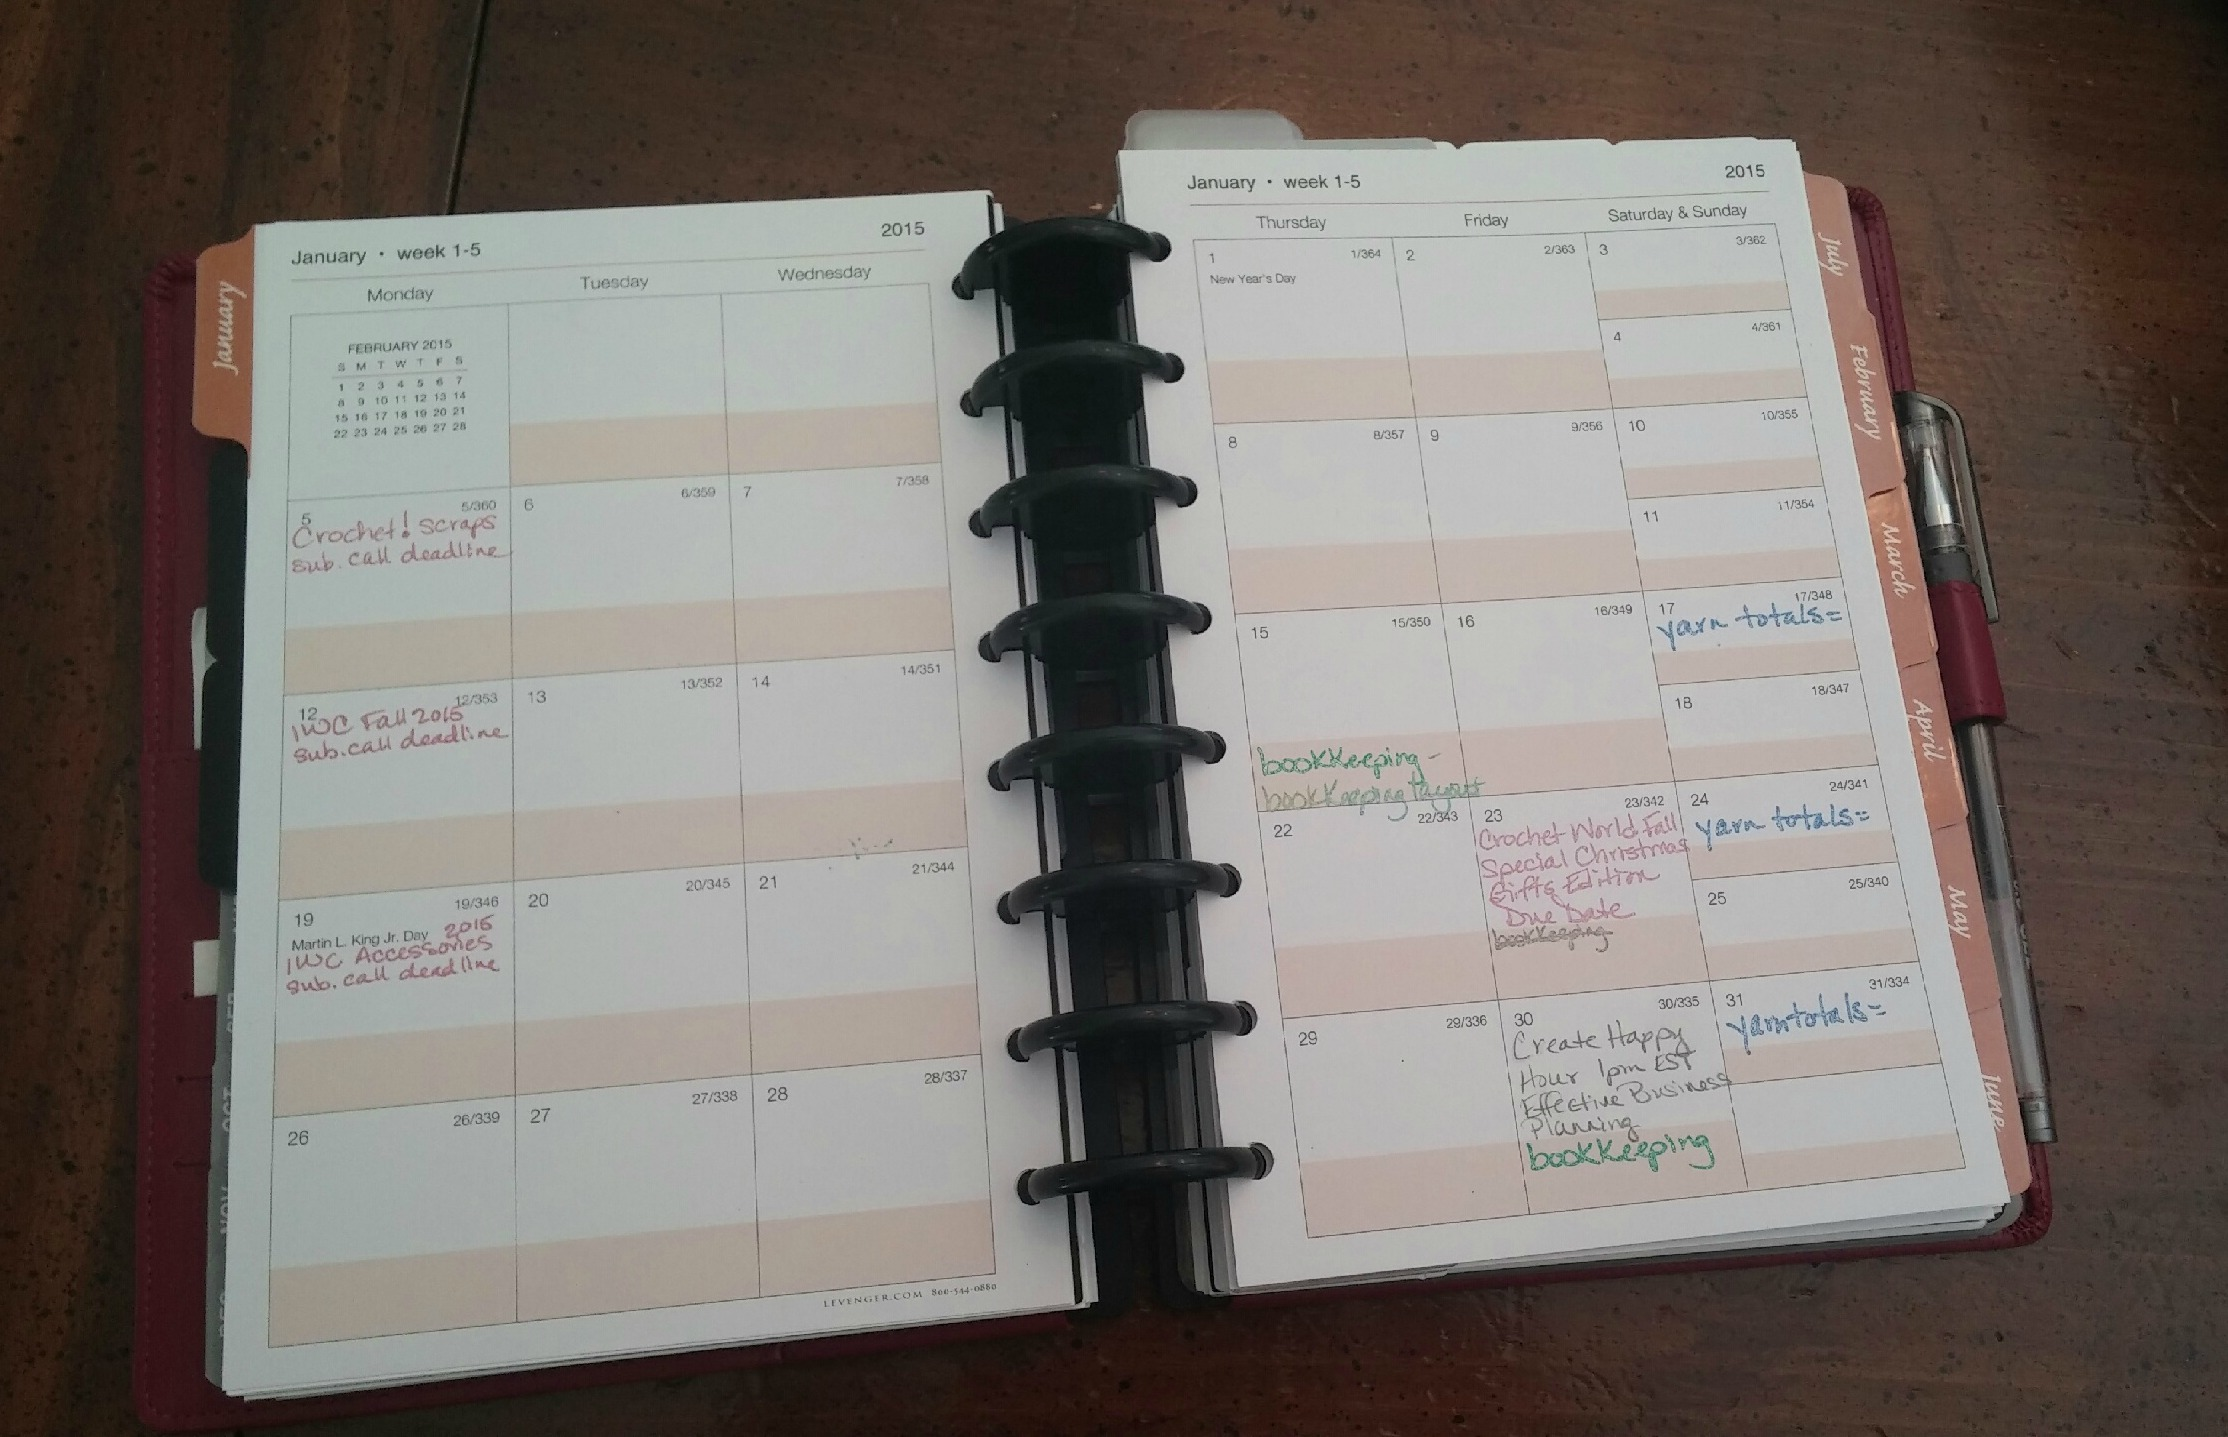 Weekly Overview Planner Page